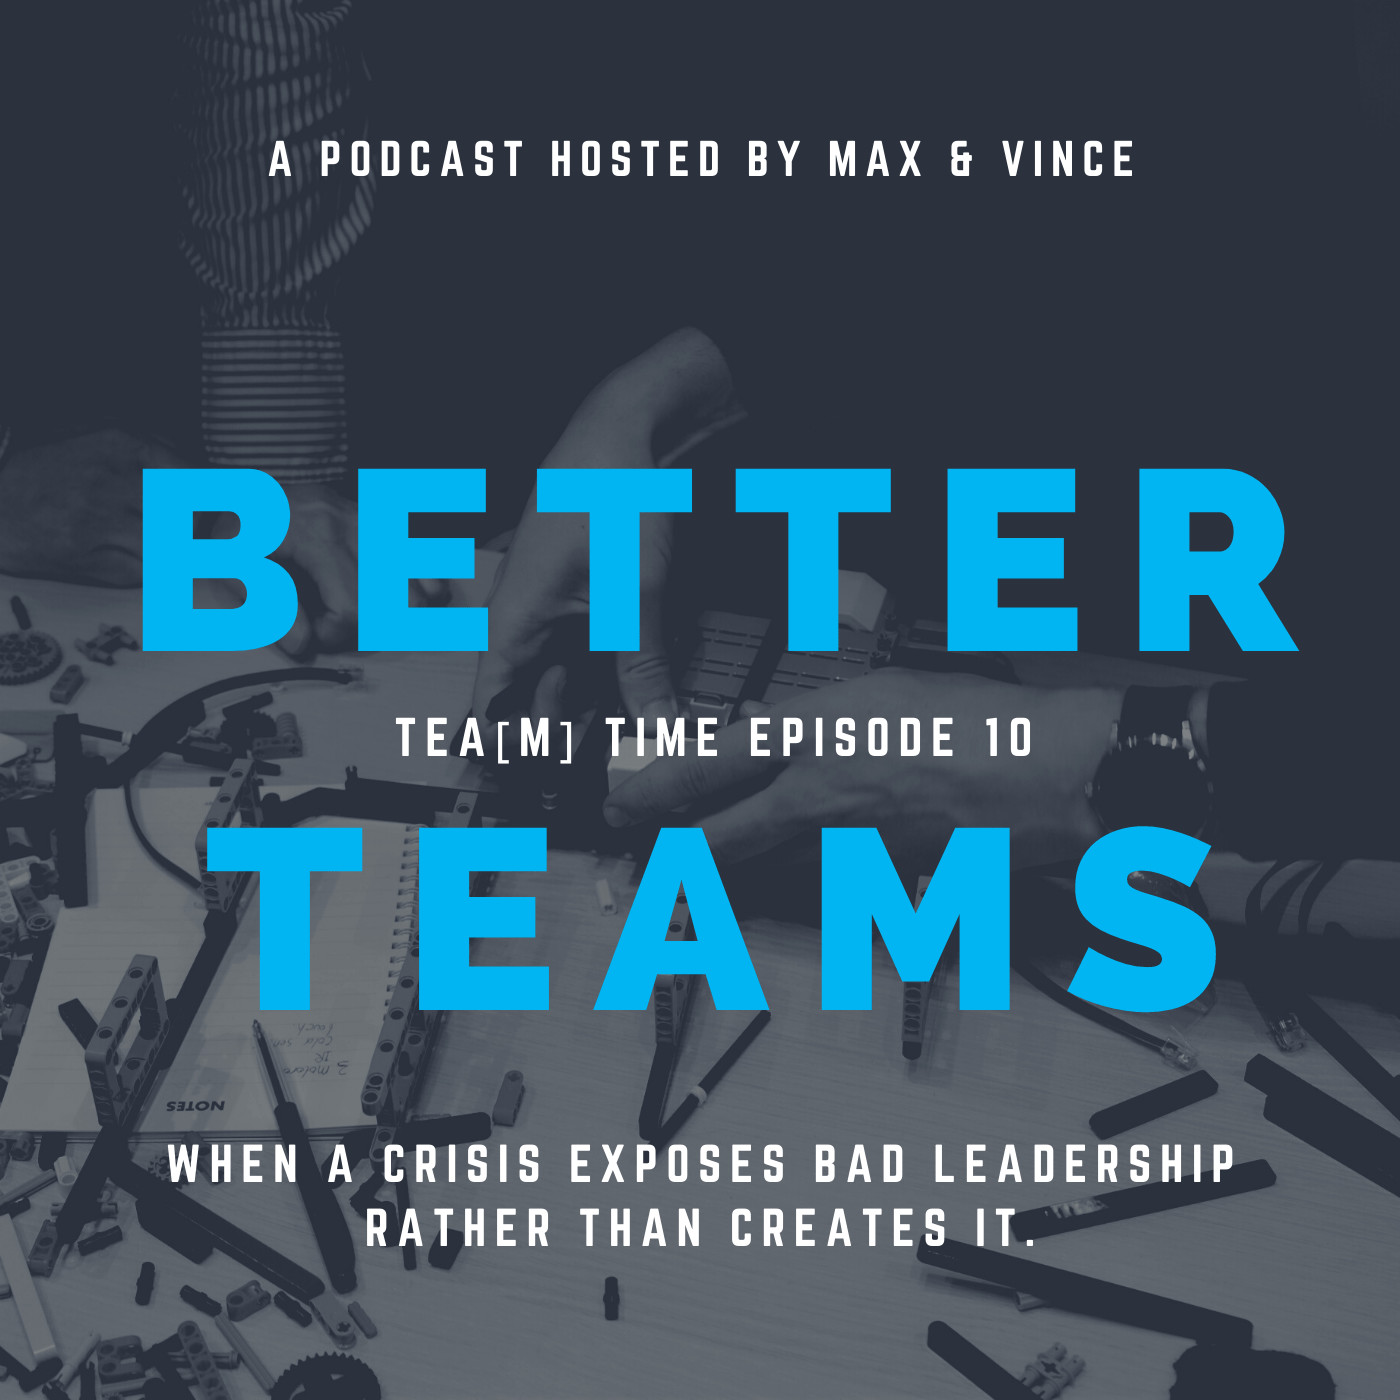 TEA(M) TIME - Episode 10 - When a Crisis Exposes Bad Leadership Rather Than Creates It